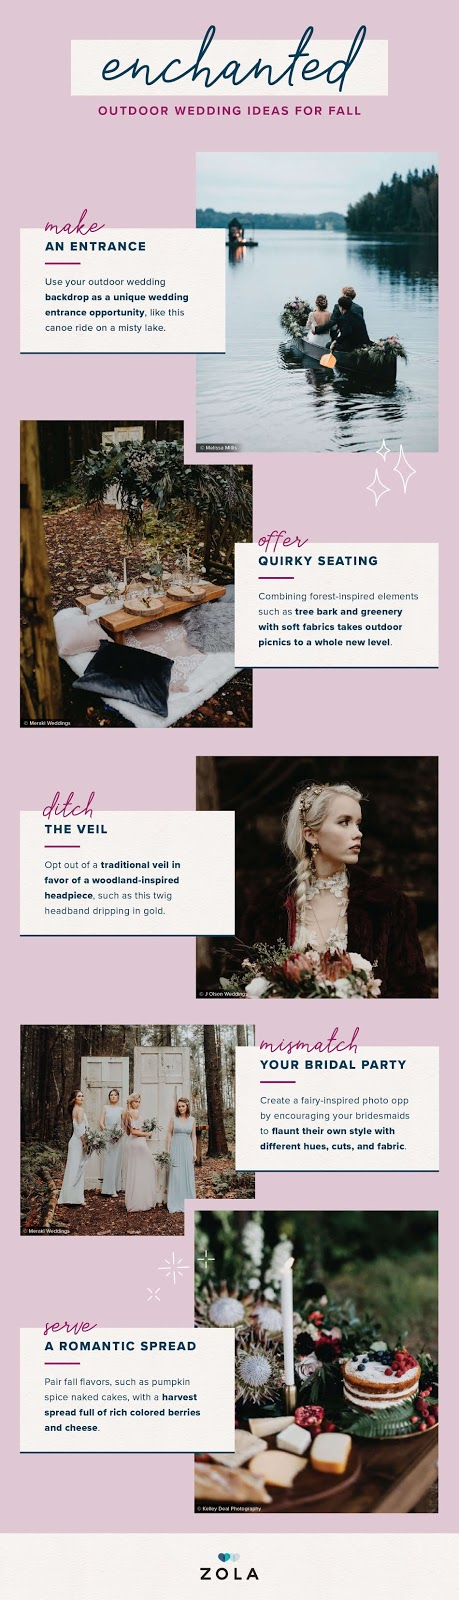 Autumn Wedding Ideas You Will Love – wedding ideas - Wedding Soiree Blog by K'Mich, Philadelphia's premier resource for wedding planning organizer and inspiration